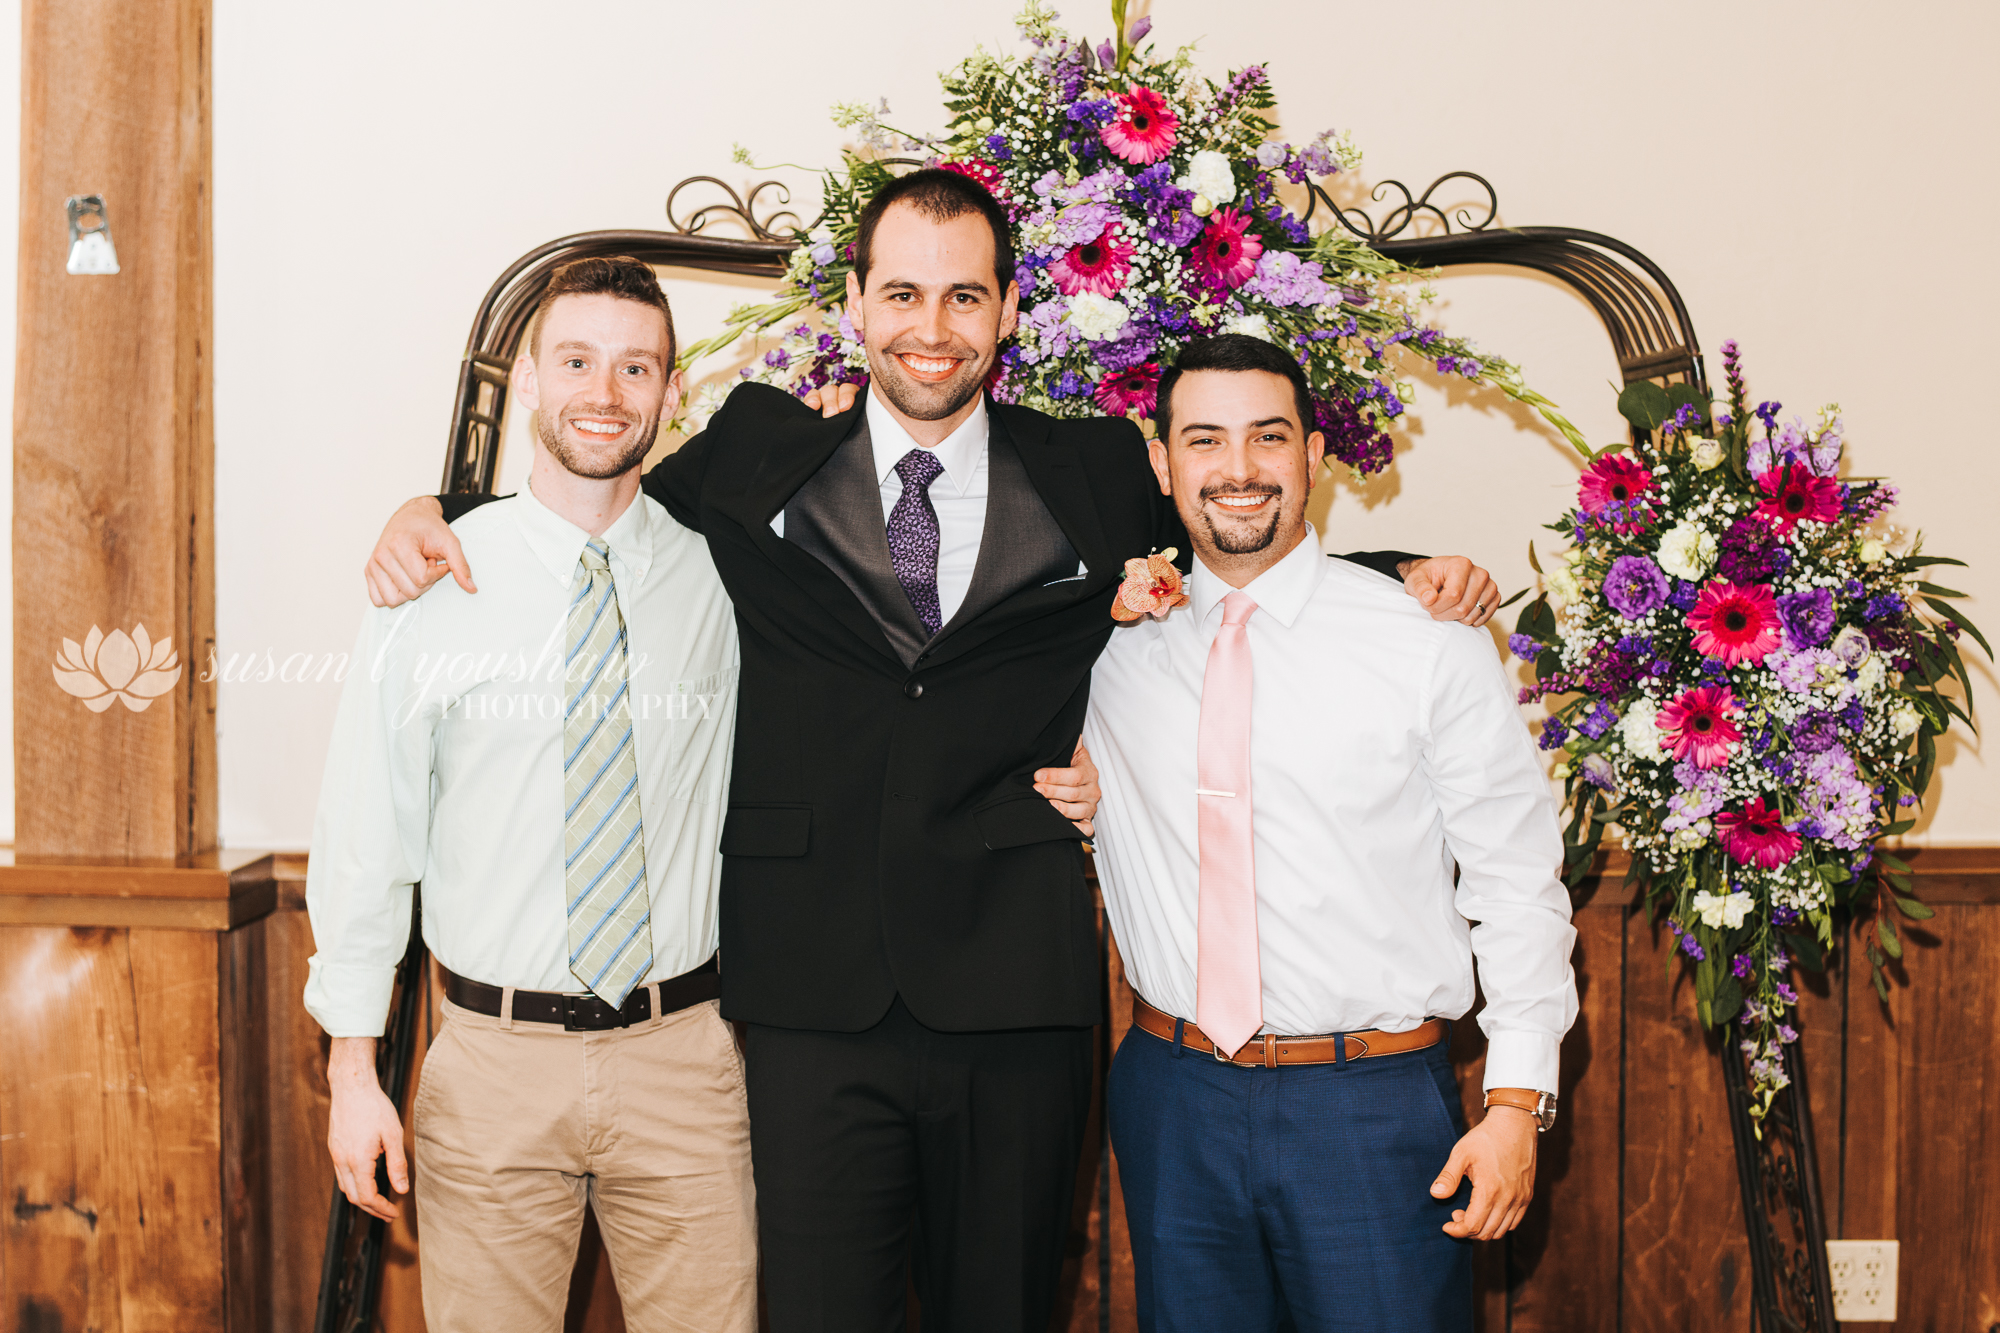 Adena and  Erik Wedding 05-17-2019 SLY Photography-114.jpg